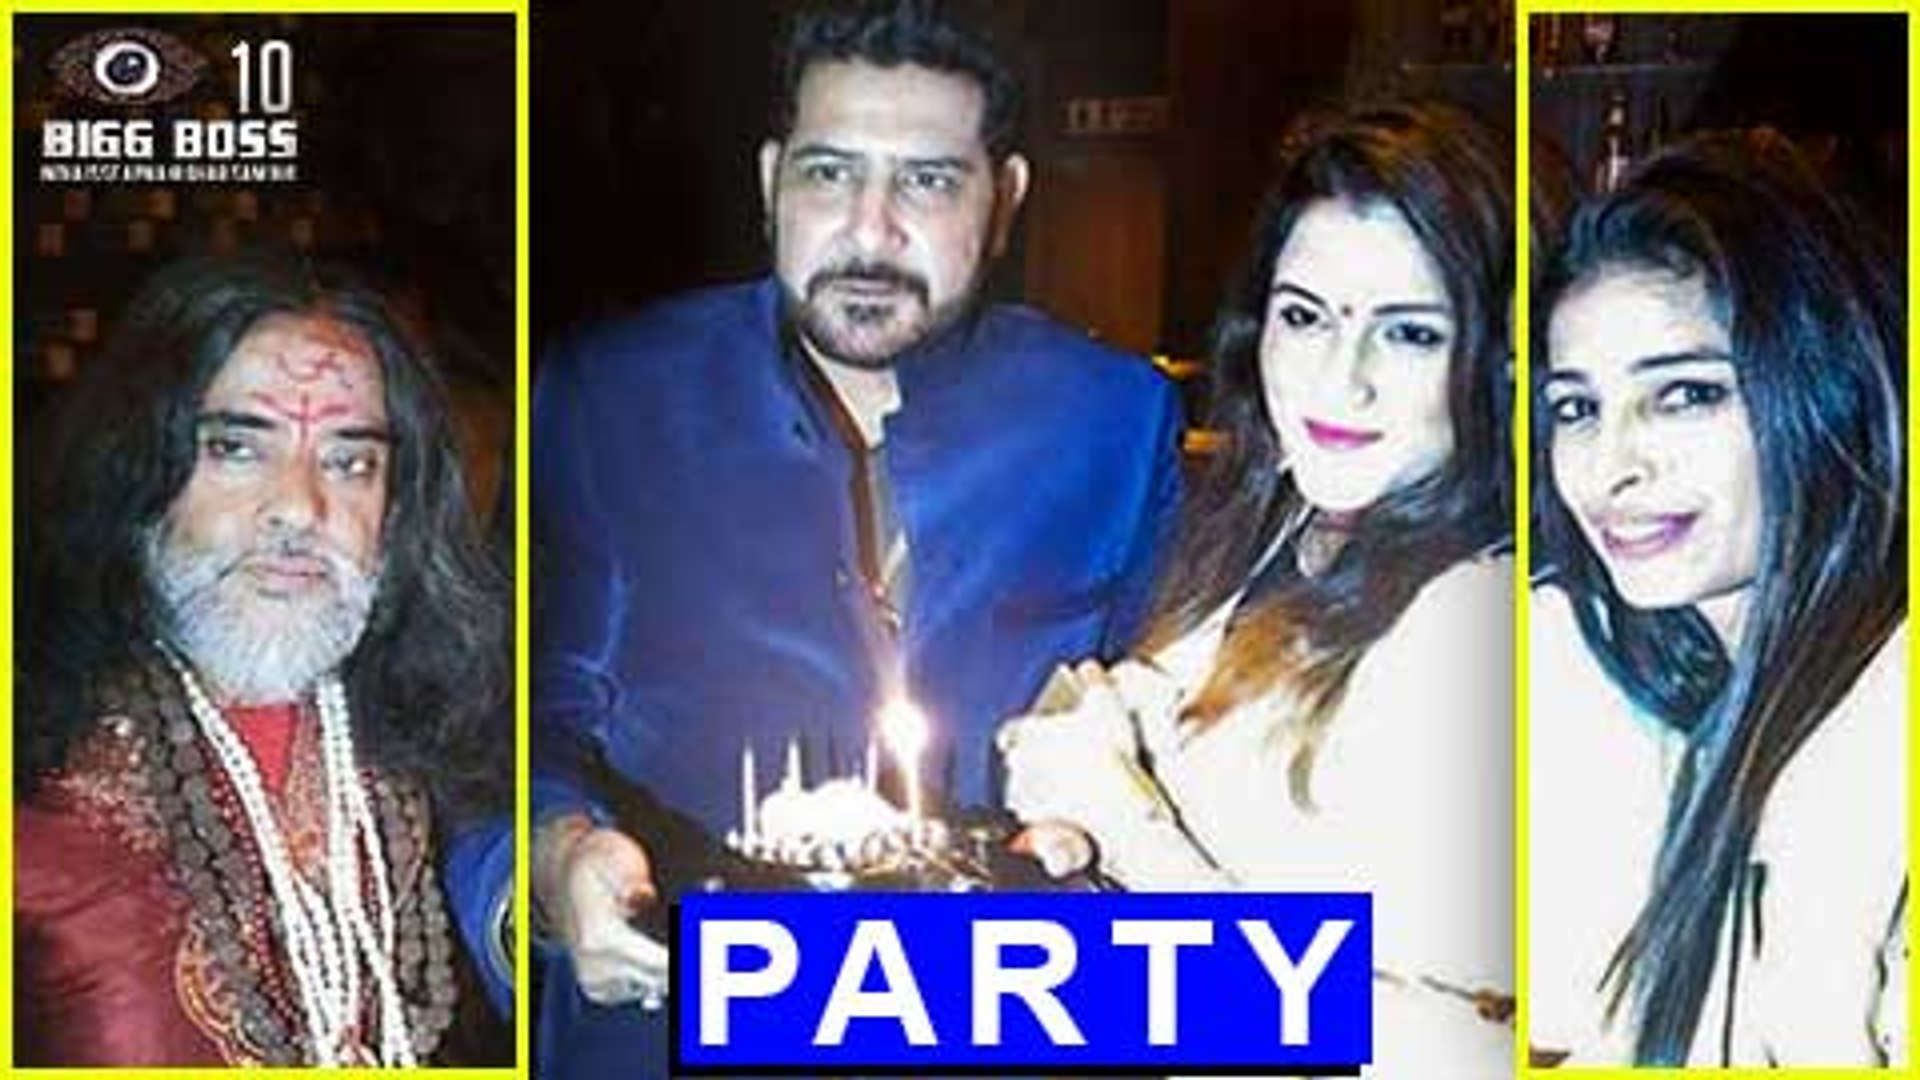 Swami Om & Priyanka Jagga PARTY TOGETHER  Bigg Boss 10